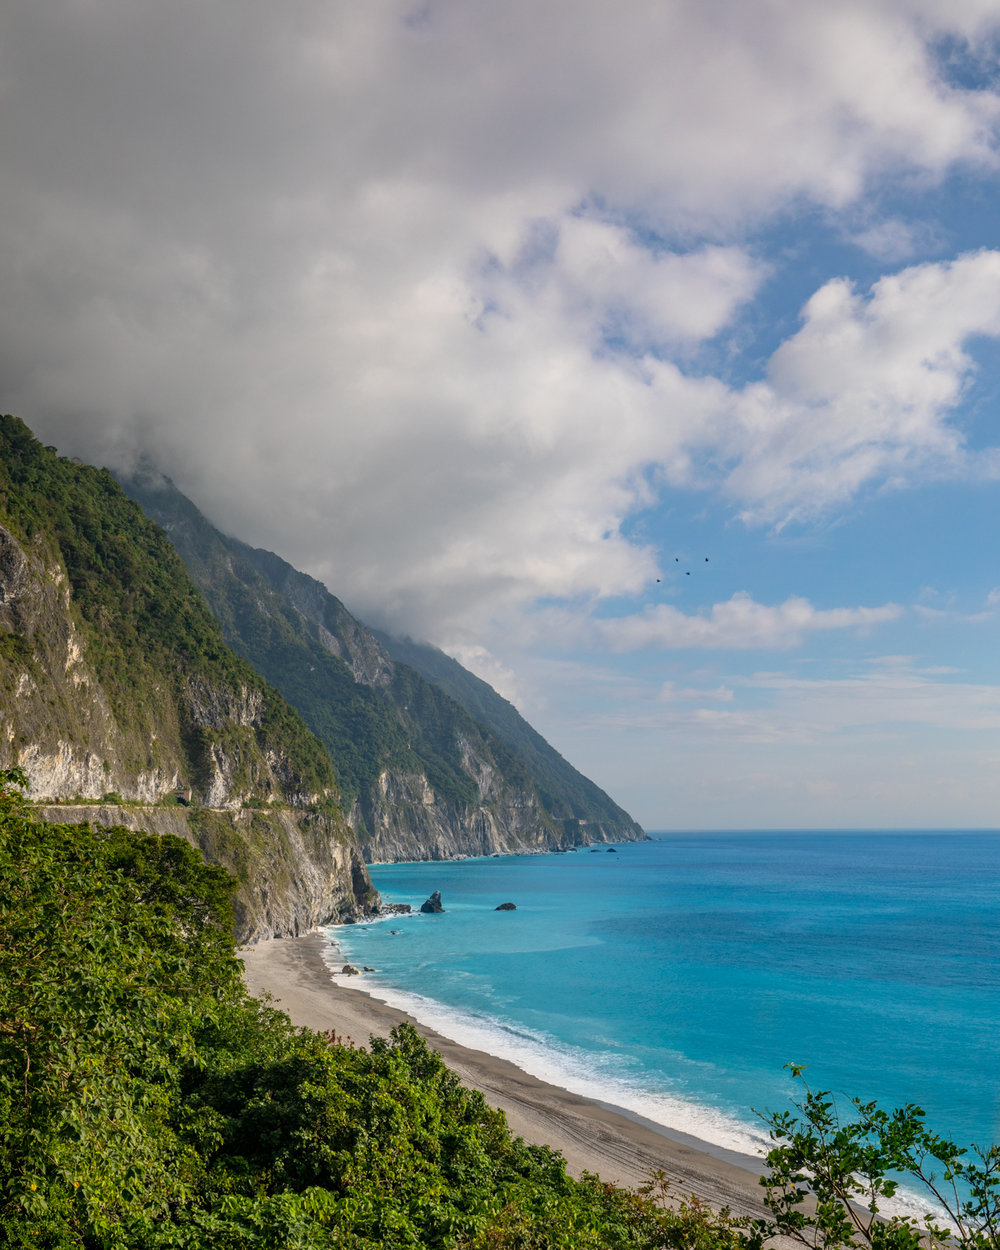 The stunning views of Qingshui Cliffs - Taroko Gorge National Park